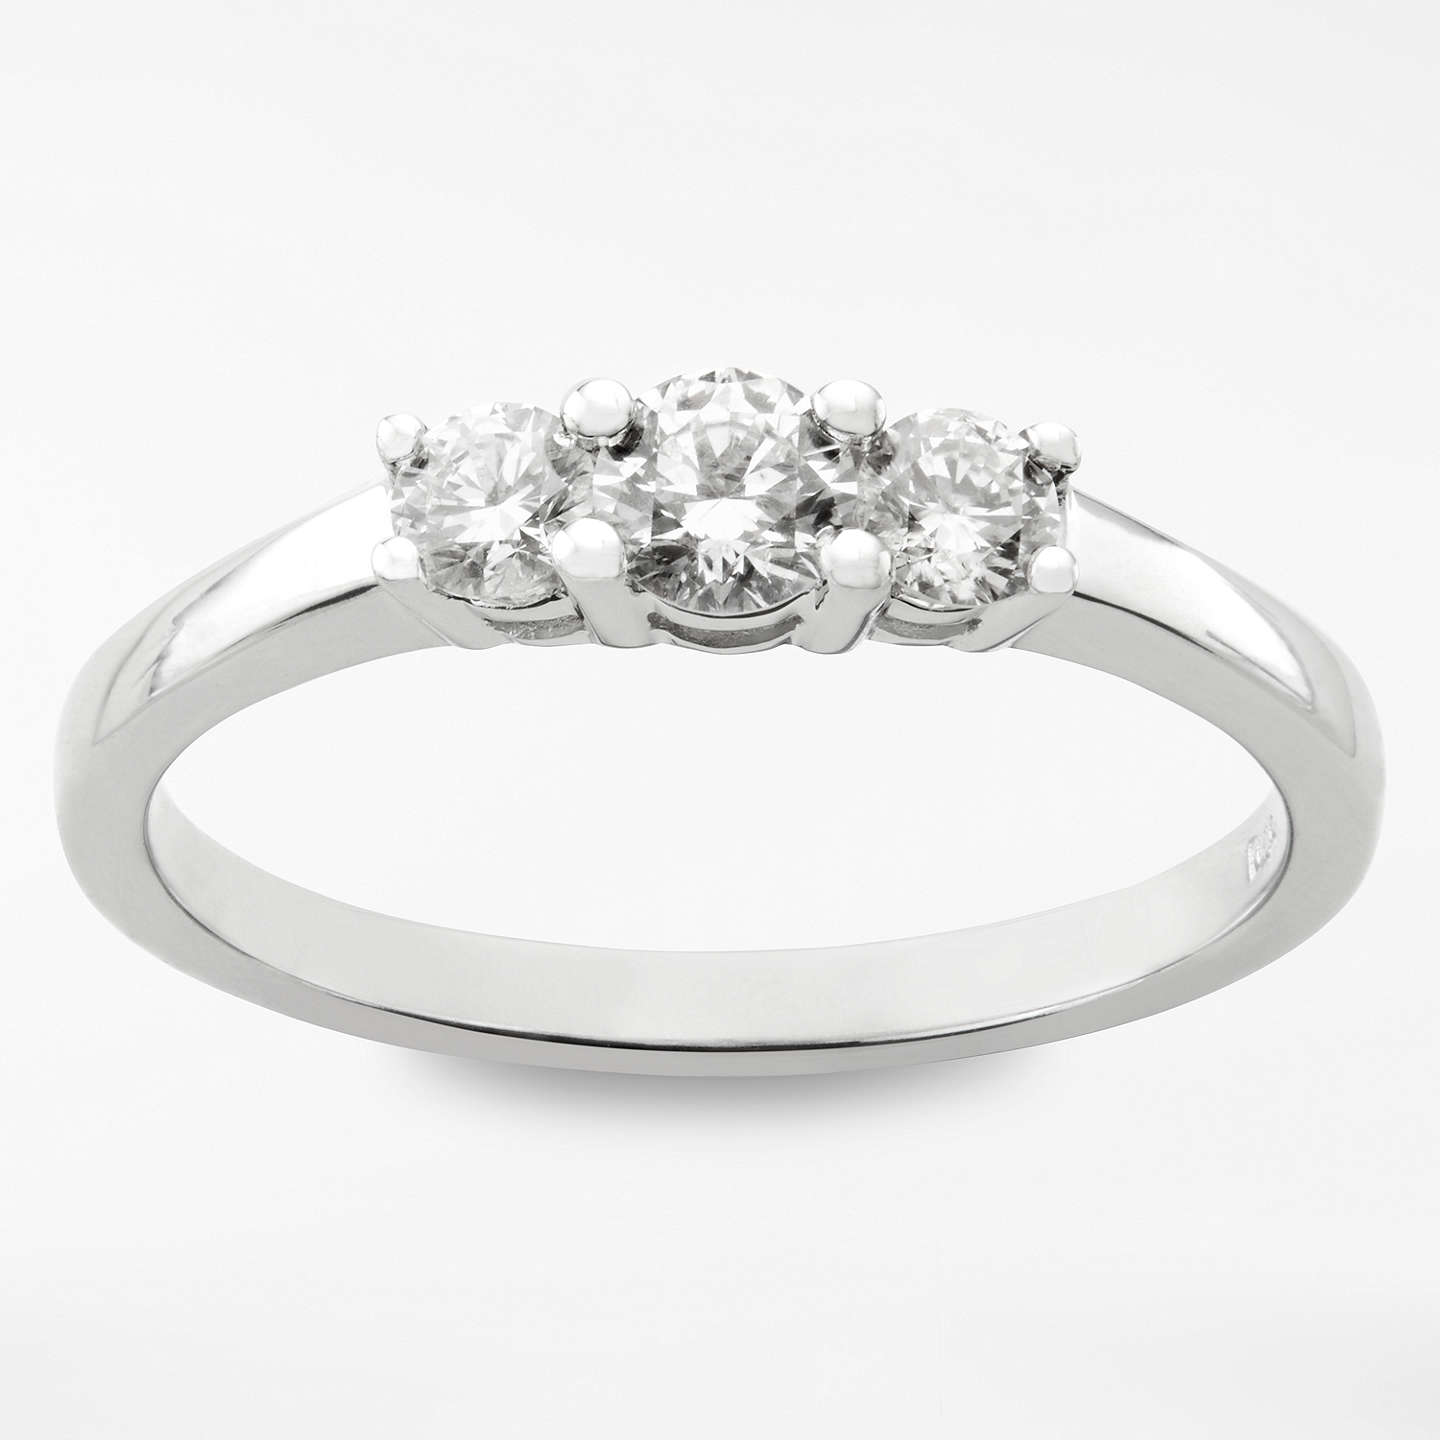 diamond product platinum upscale engagement round in shop rings classic scale subsampling ring false beers db crop de